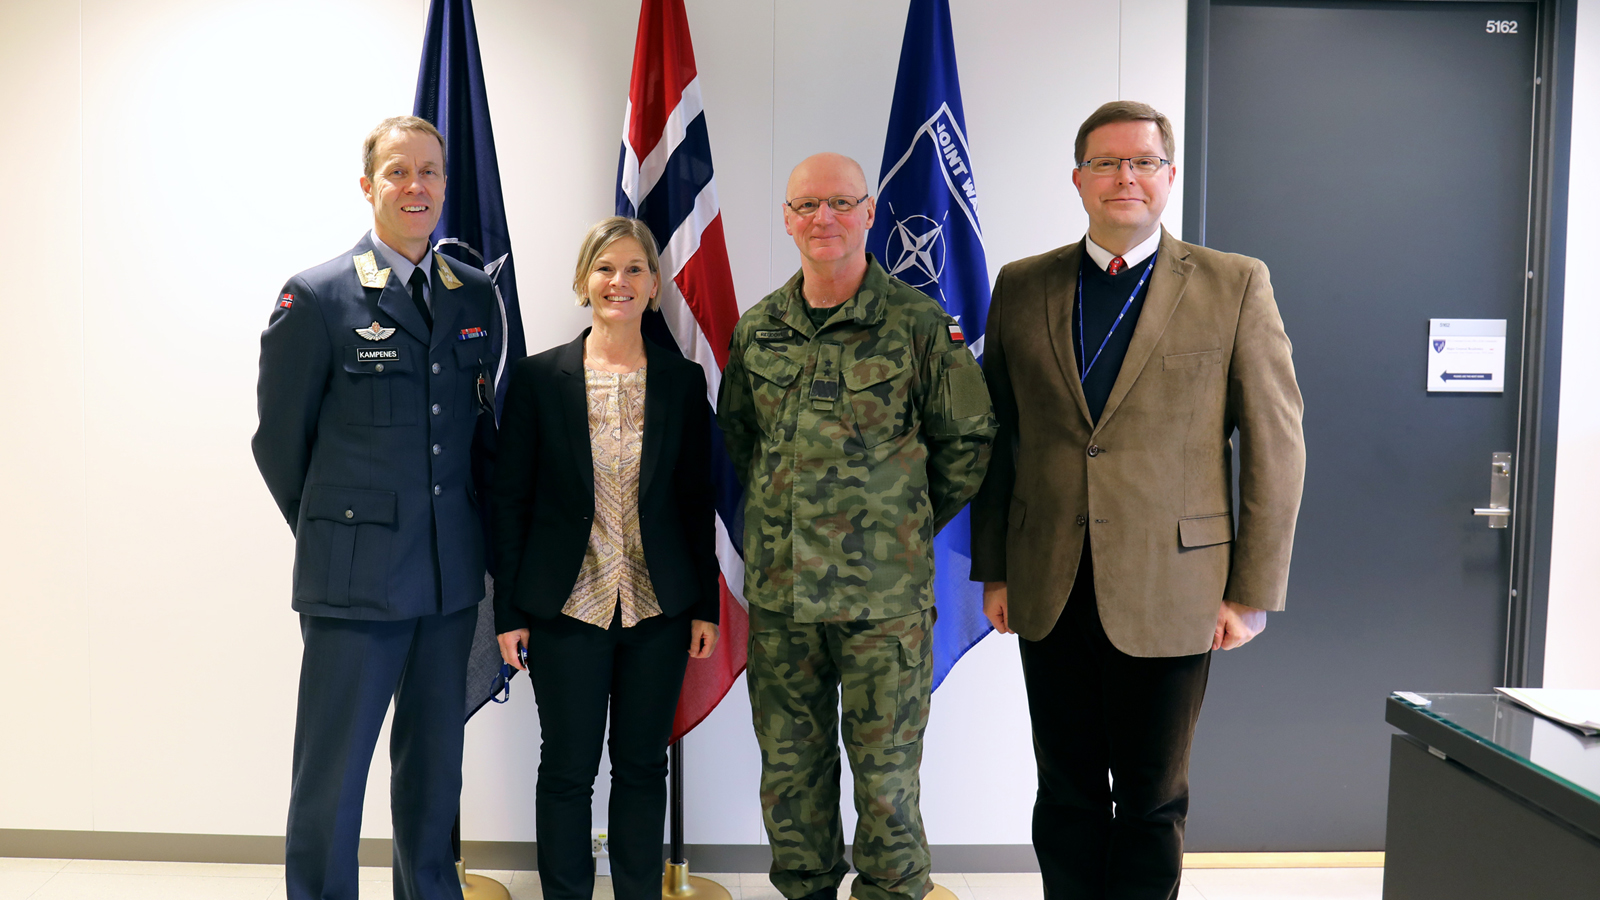 Cyberspace Day at NATO Joint Warfare Centre